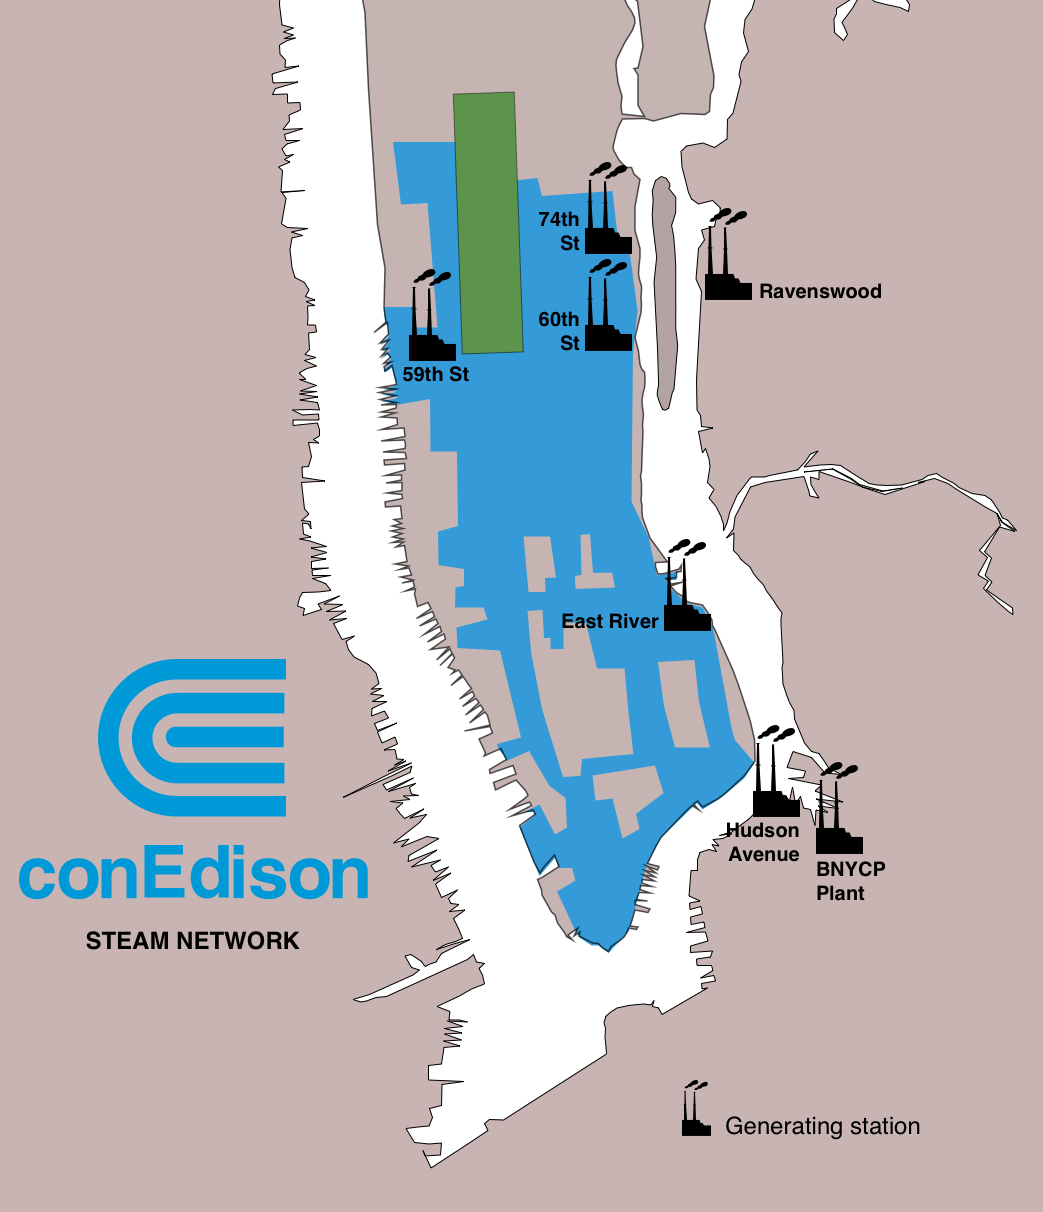 Con Edison Steam Network. North to South: 74st St (East), Ravenswood (Queens), 60th St (East), 59th St (West), East River, Hudson Ave (Brooklyn), BNYCP Plant (Brooklyn)